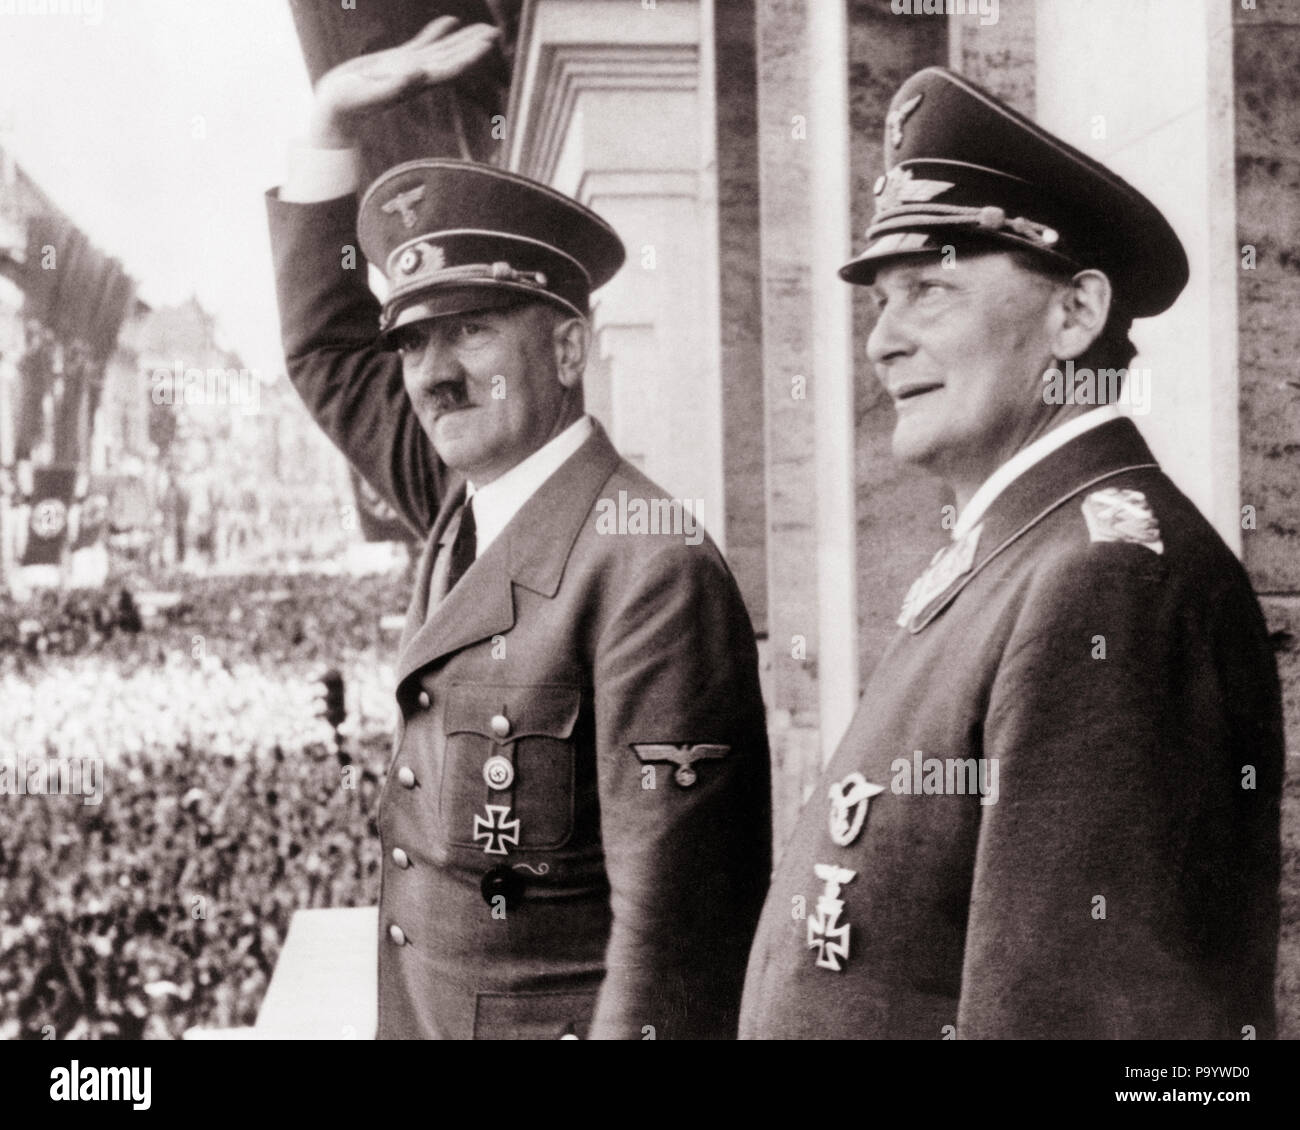 1930s 1940s ADOLF HITLER AND HERMANN GOERING ON BALCONY WAVING TO CROWD CIRCA 1938  - q72076 CPC001 HARS POWERFUL WORLD WARS WORLD WAR WORLD WAR TWO WORLD WAR II DICTATOR AUTHORITY FACIAL HAIR OCCUPATIONS POLITICS UNIFORMS 1938 NAZI WORLD WAR 2 ADOLF HITLER CIRCA MOUSTACHED SALUTING BLACK AND WHITE CAUCASIAN ETHNICITY OLD FASHIONED - Stock Image